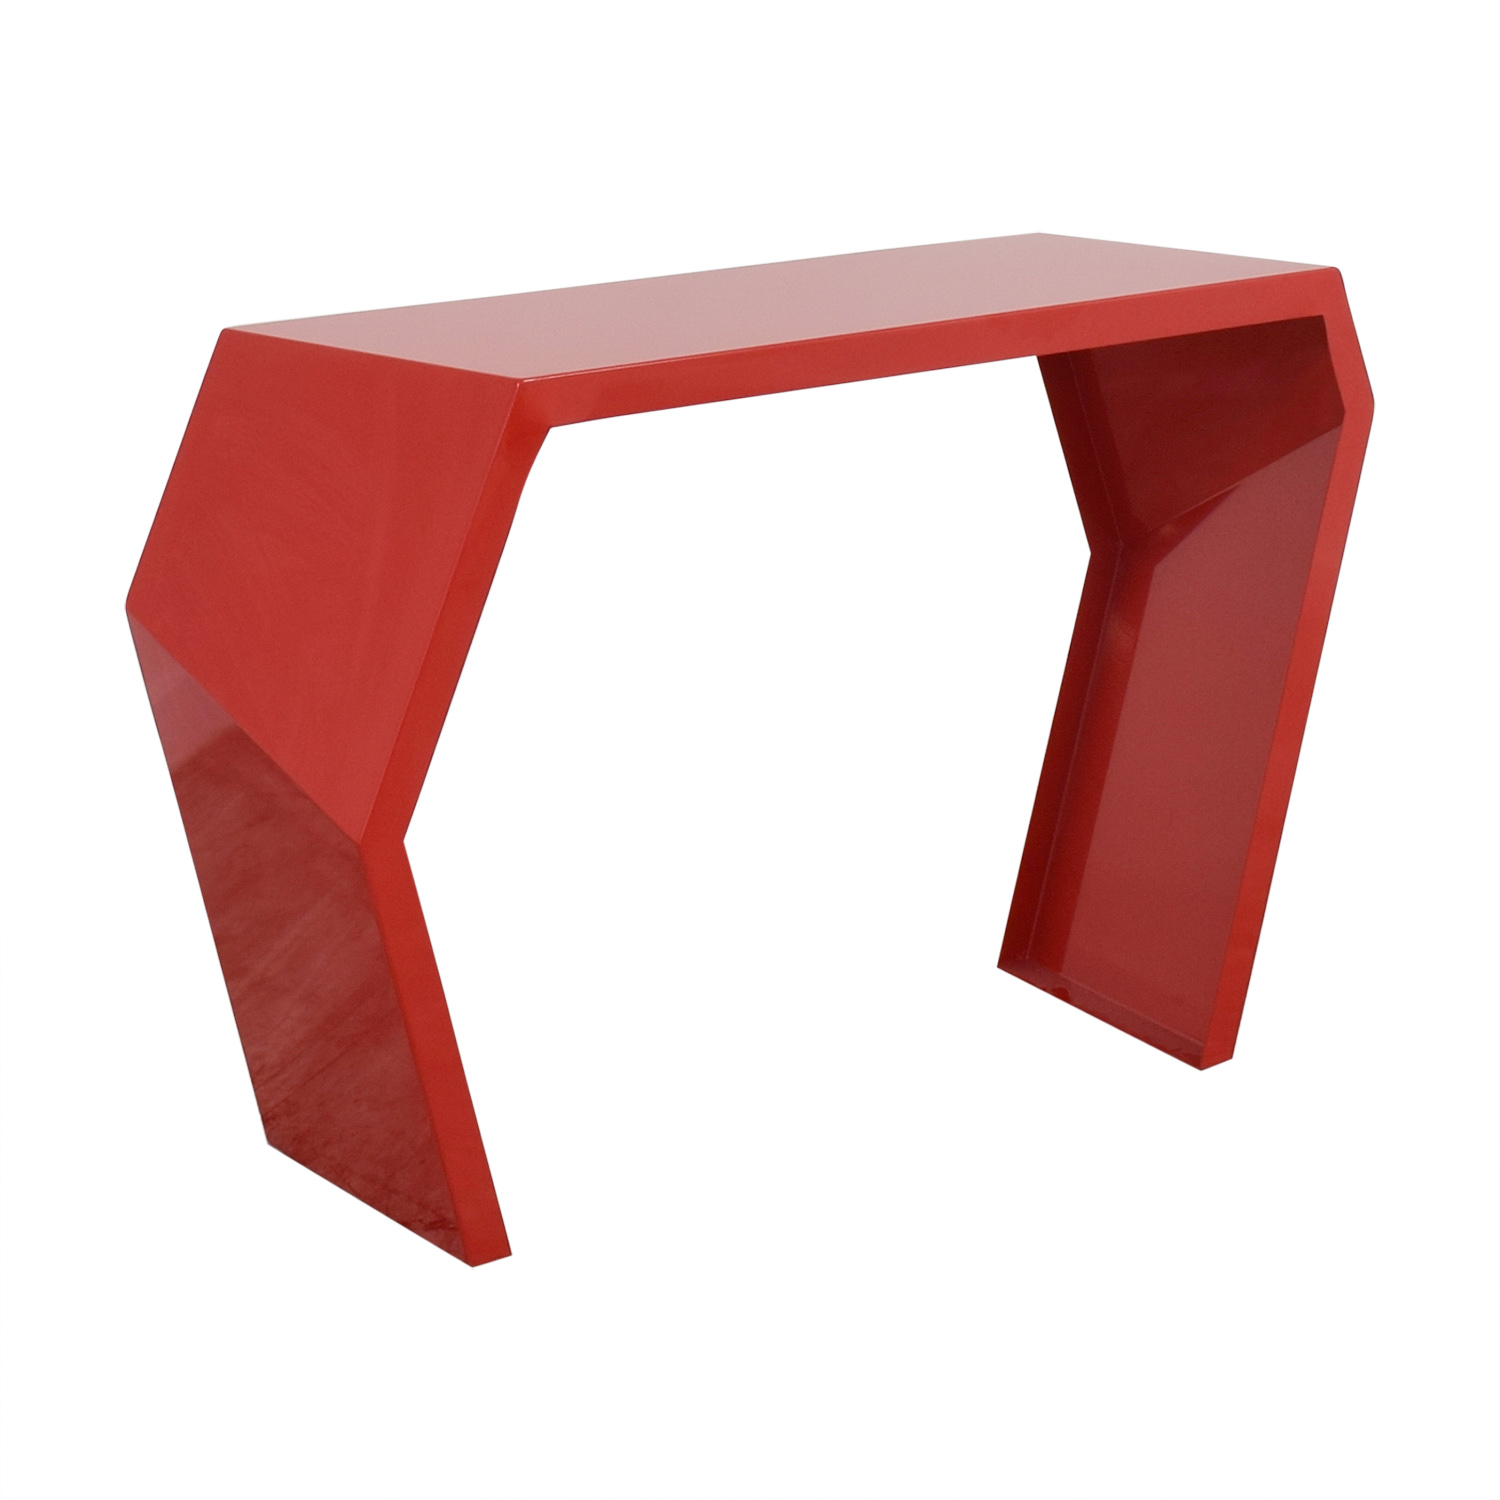 Arktura Arktura Pac Console Table second hand